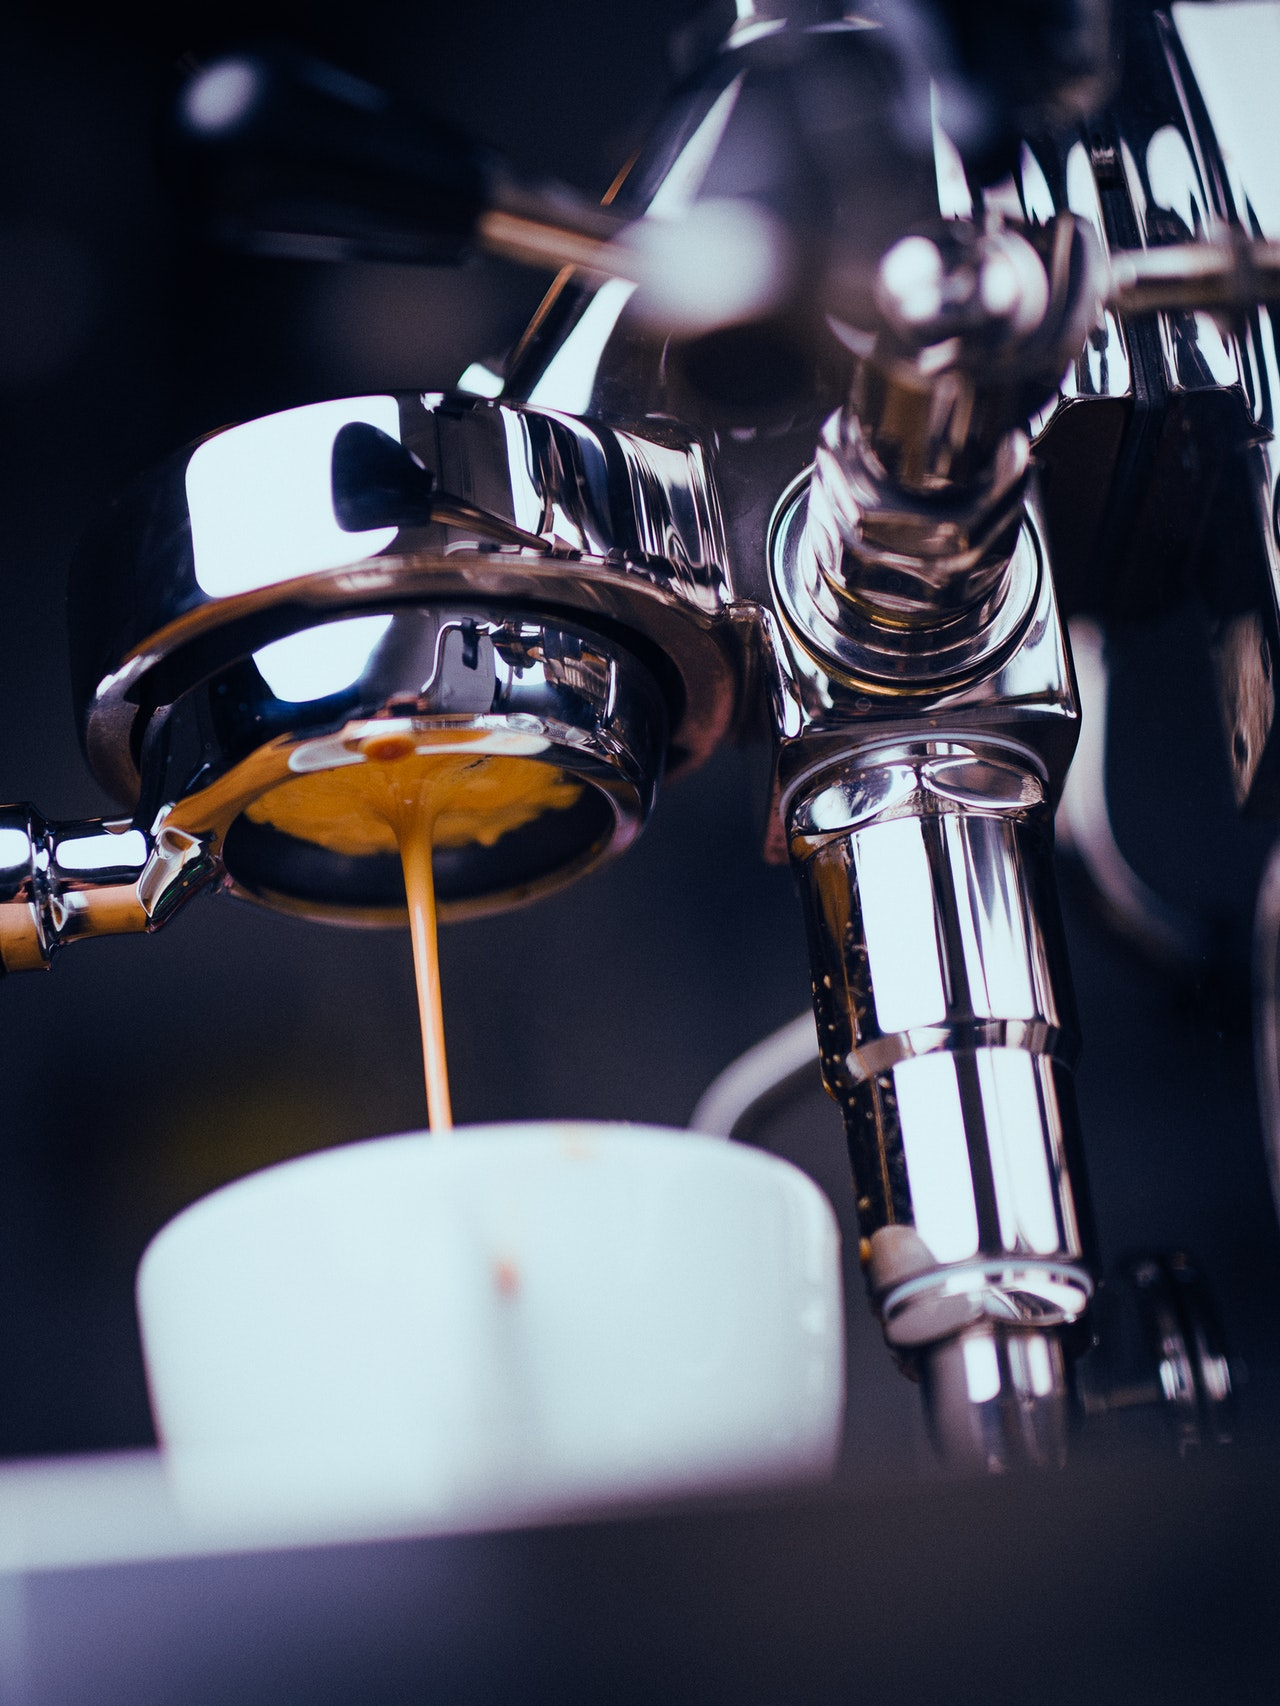 The Best Espresso Machines For You